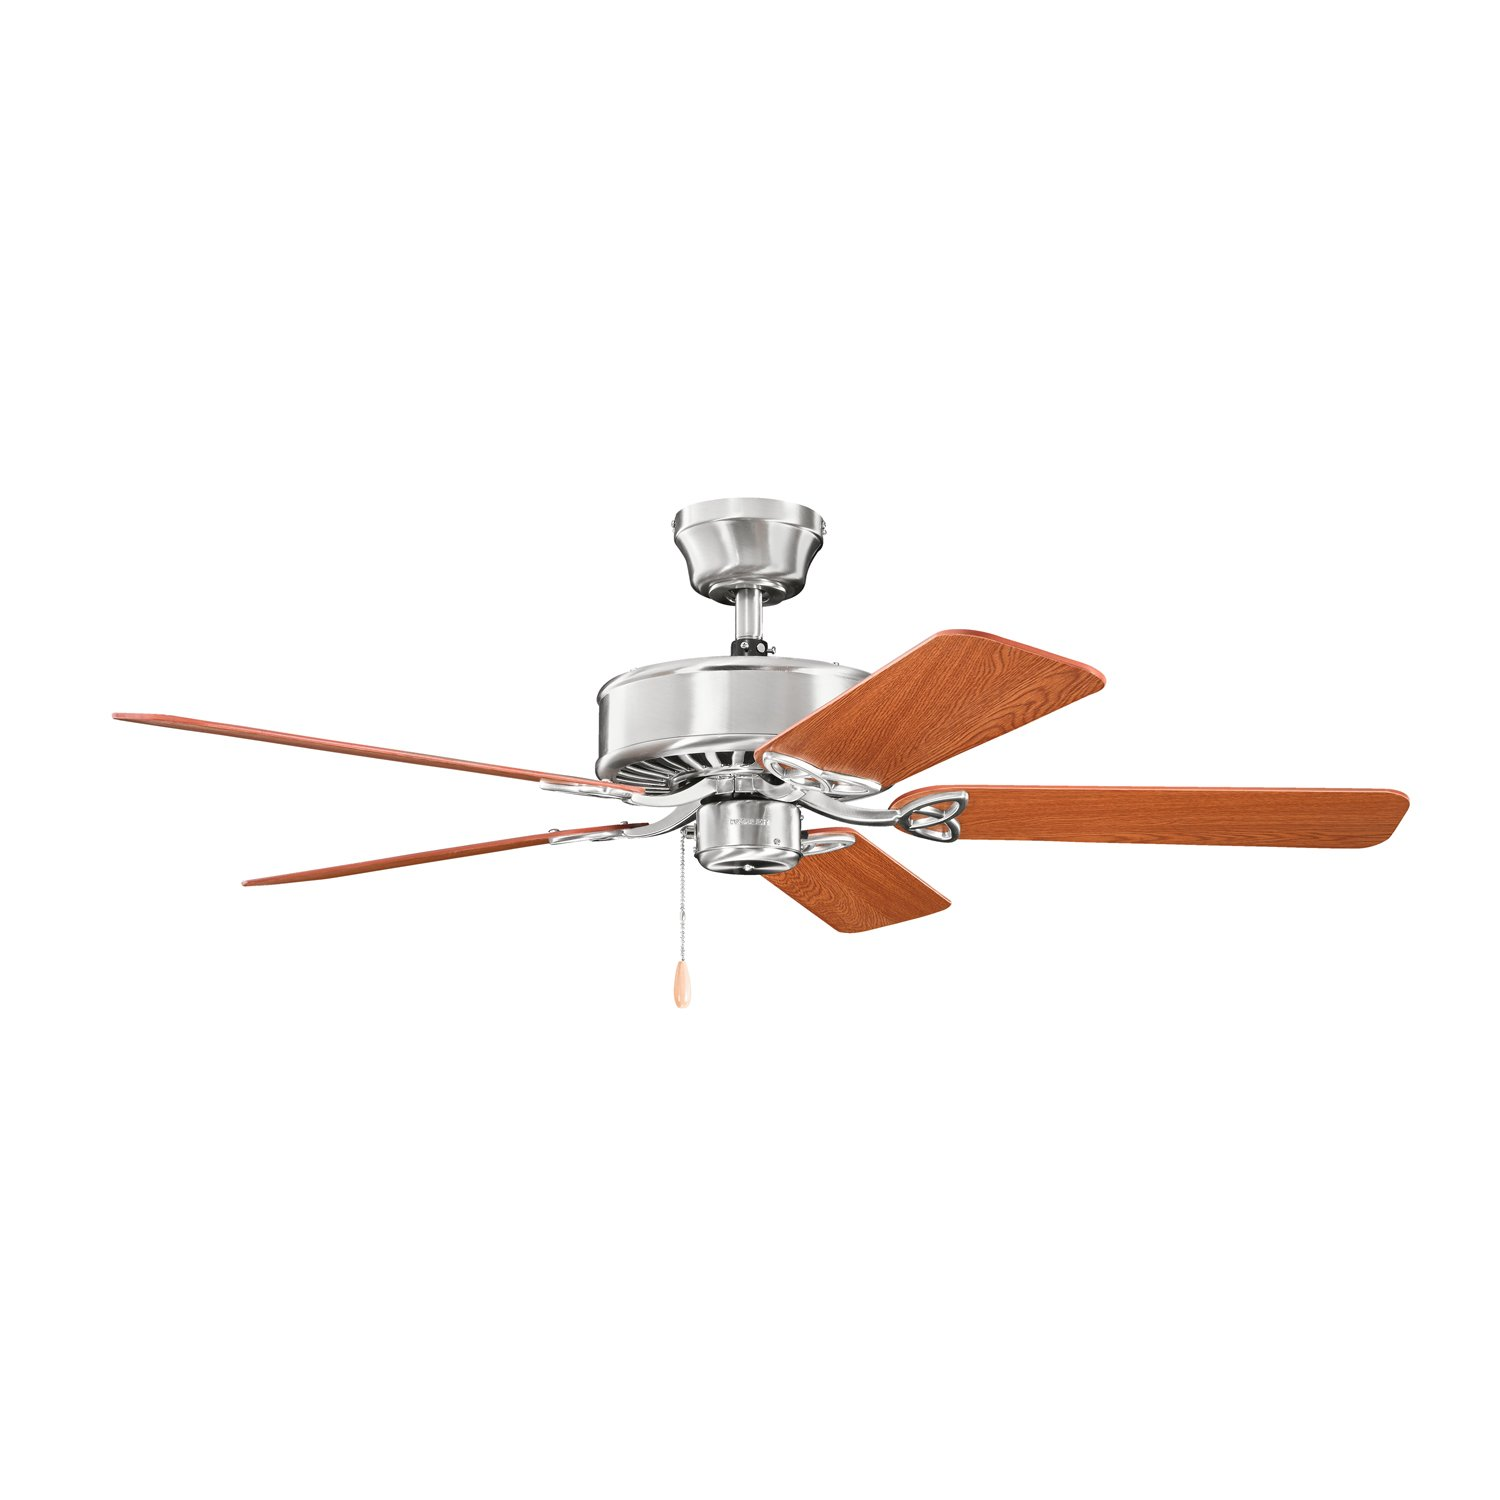 Kichler Lighting 330100BSS Renew 50IN Energy Star Ceiling Fan, Brushed Stainless Steel Finish with Reversible Blades